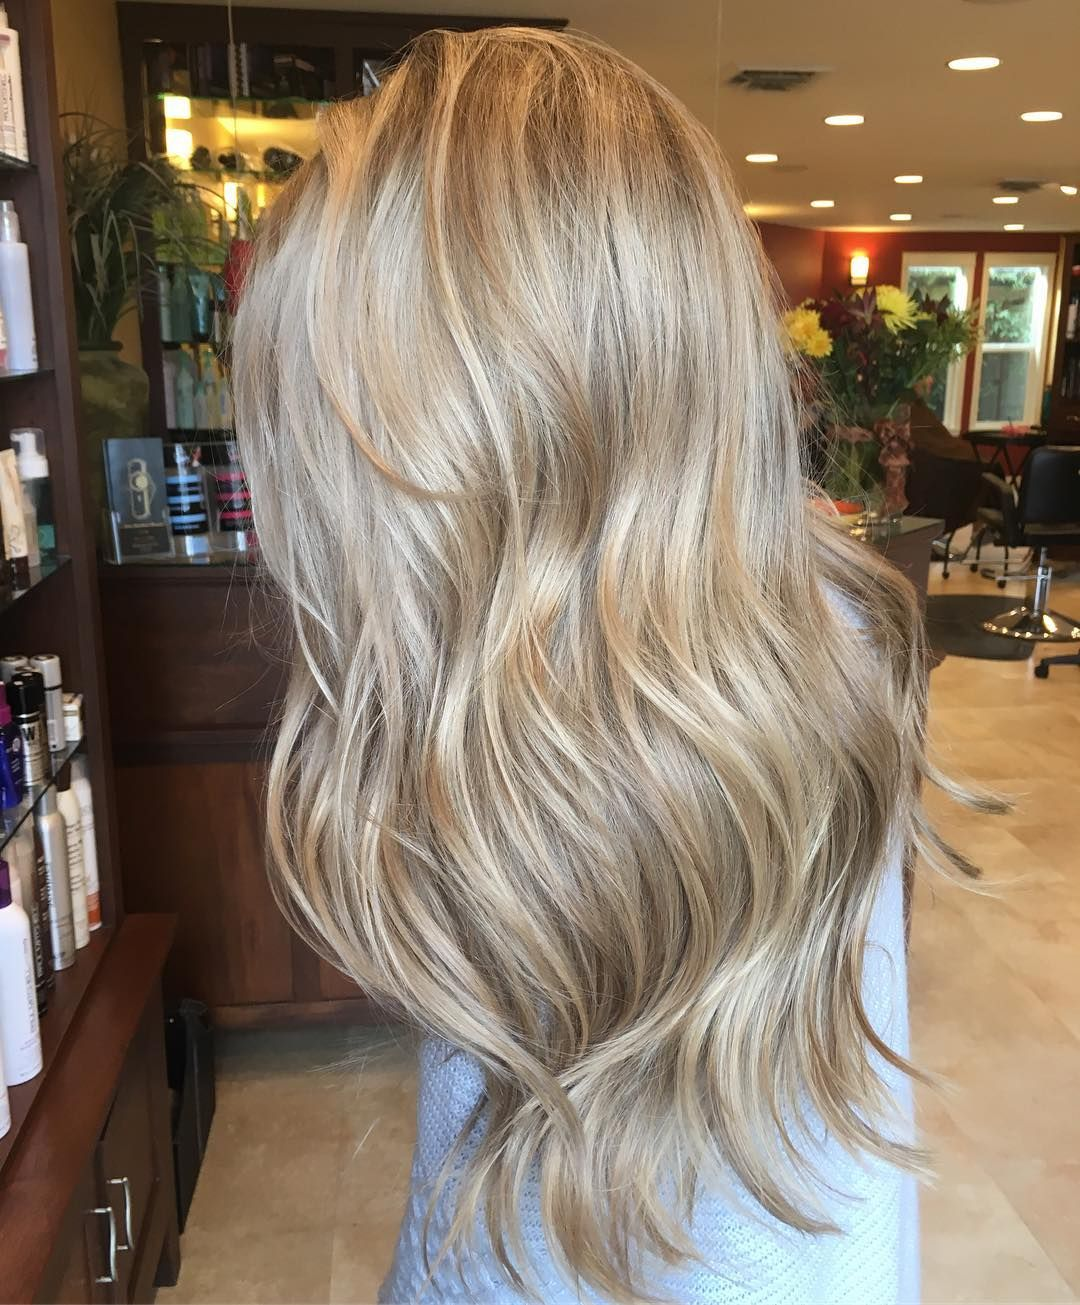 This Hair I Added Lowlights And Shadow Root In A Level 7 As Well As Toned Her Level 10 11 Blonde Do Beige Blonde Hair Sandy Blonde Hair Light Blonde Hair